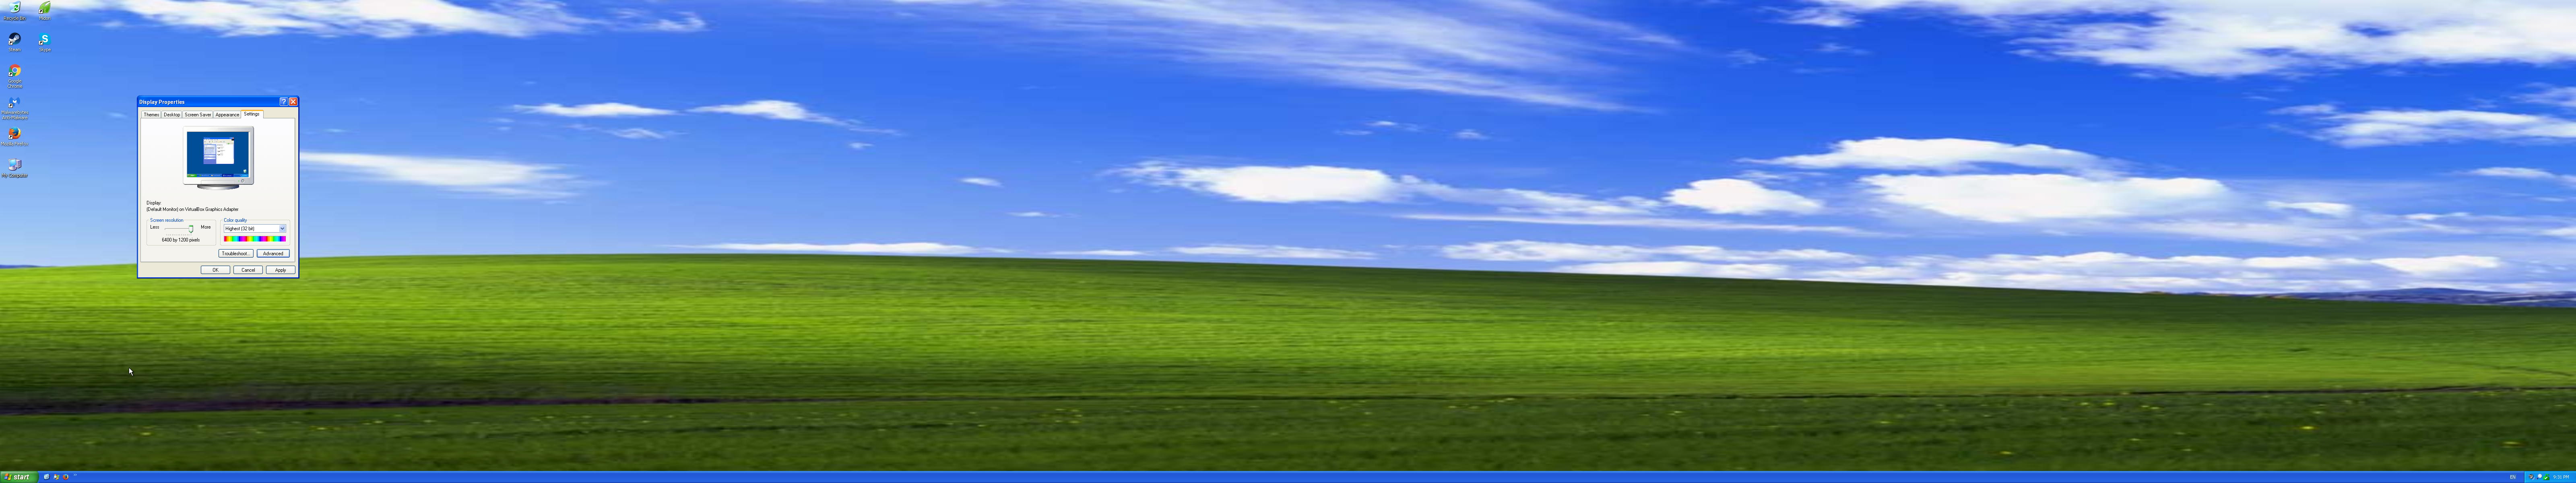 Windows Xp Bliss 4k Posted By Zoey Sellers